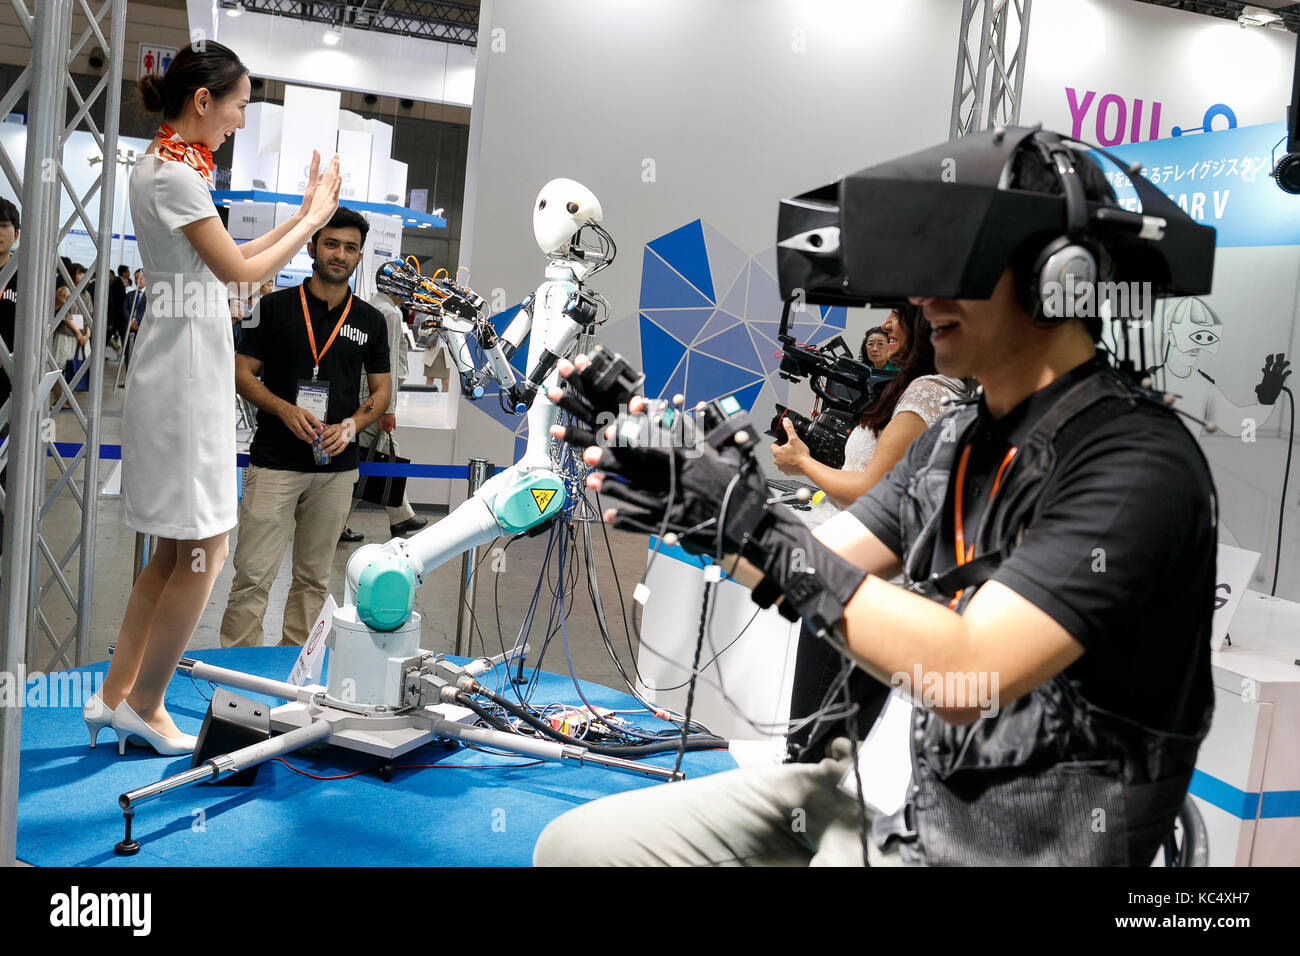 Exhibition Booth Assistant : Robot booth at exhibition stock photos